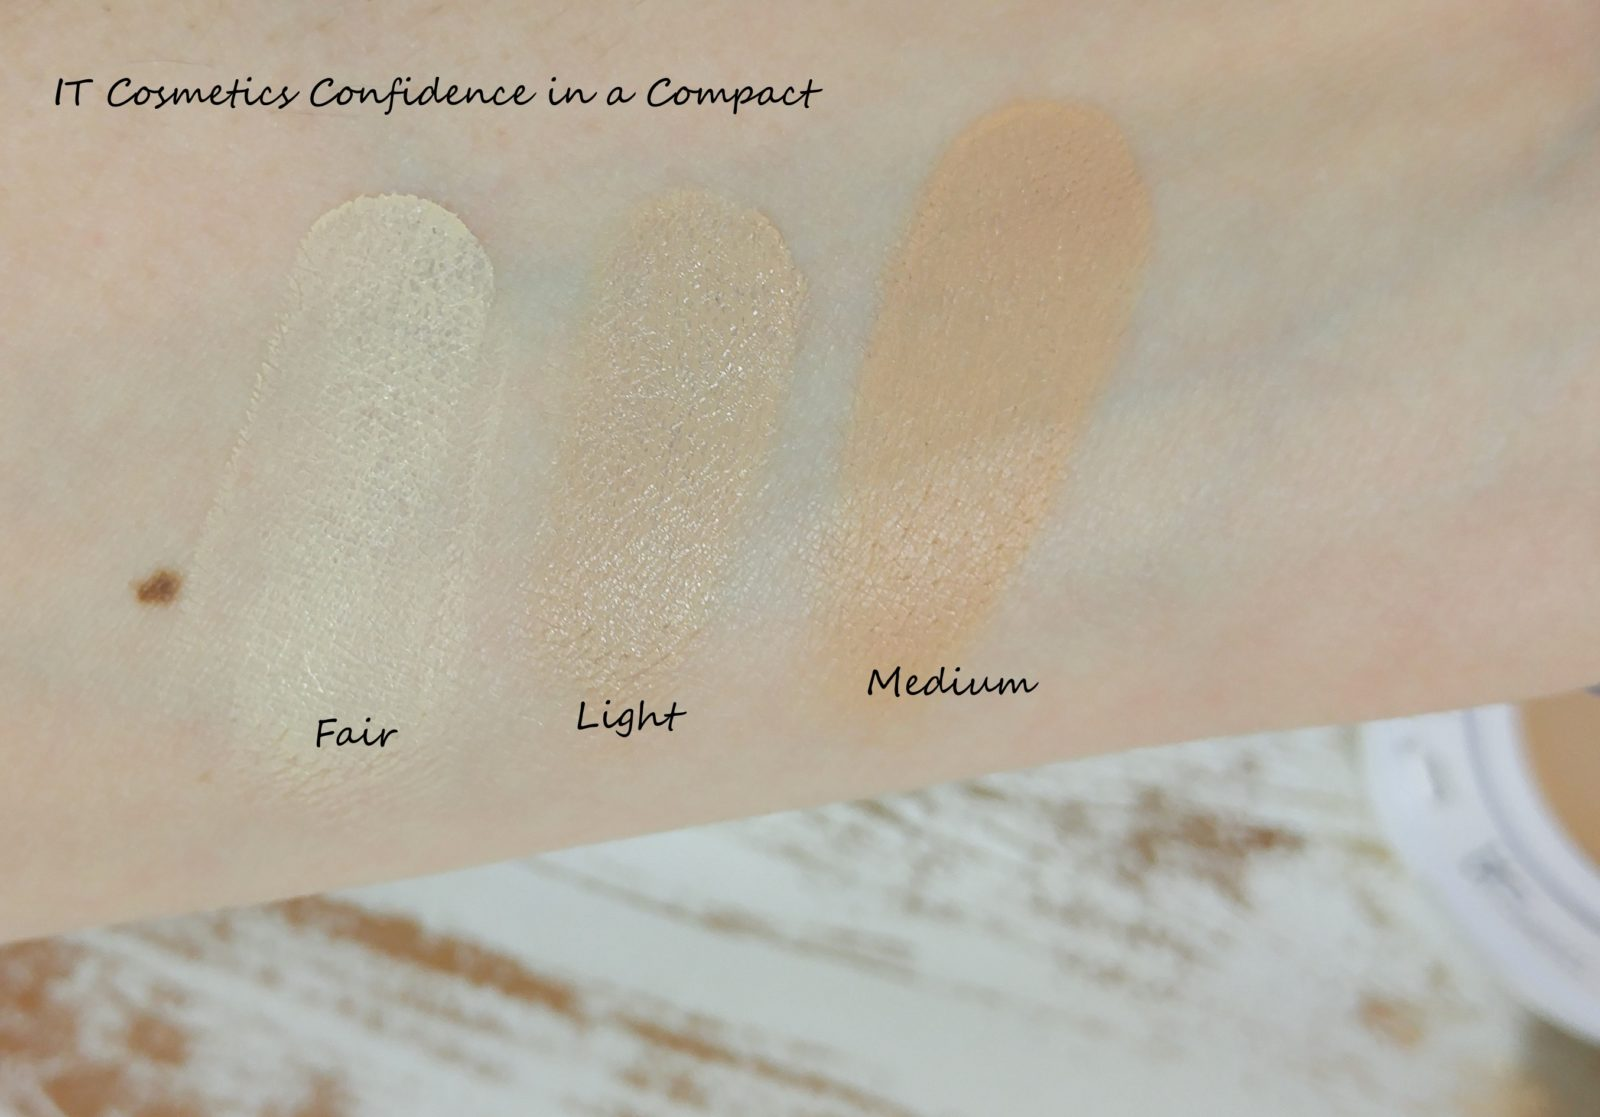 Confidence in a Compact Swatches Fair Light Medium